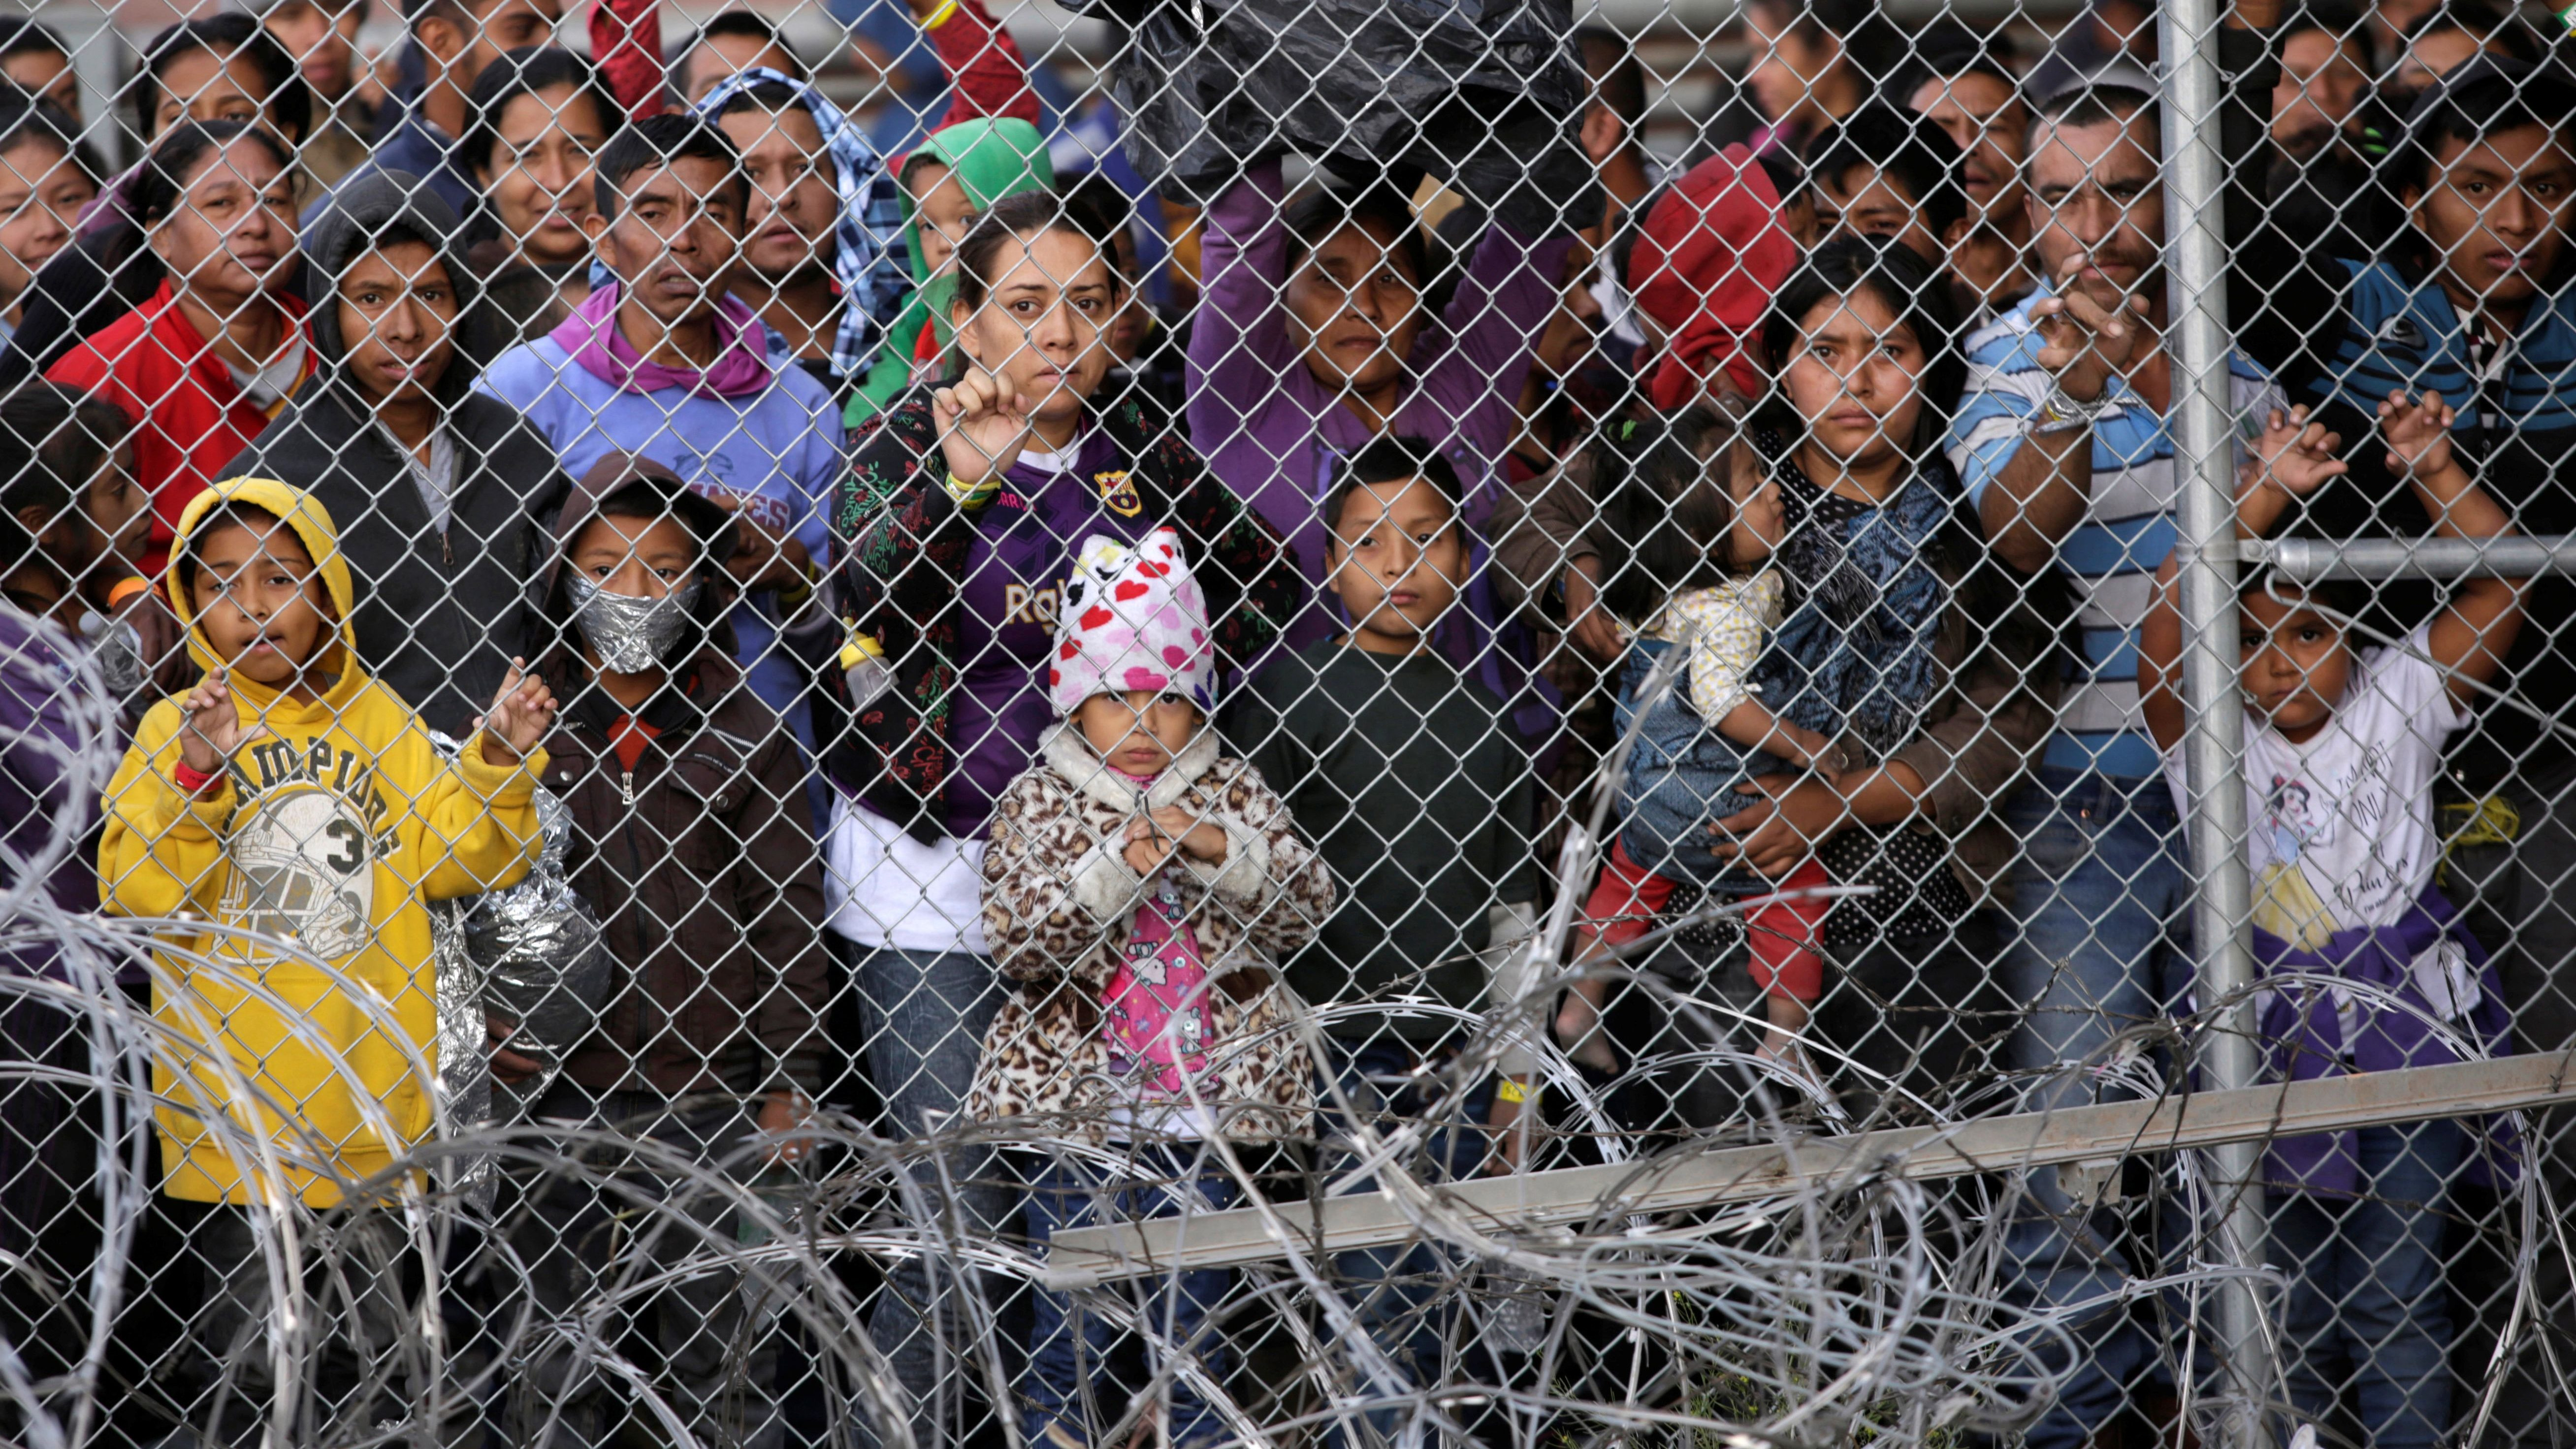 Central American migrants are seen inside an enclosure where they are being held by U.S. Customs and Border Protection (CBP), after crossing the border between Mexico and the United States illegaly and turning themselves in to request asylum, in El Paso, Texas, U.S.